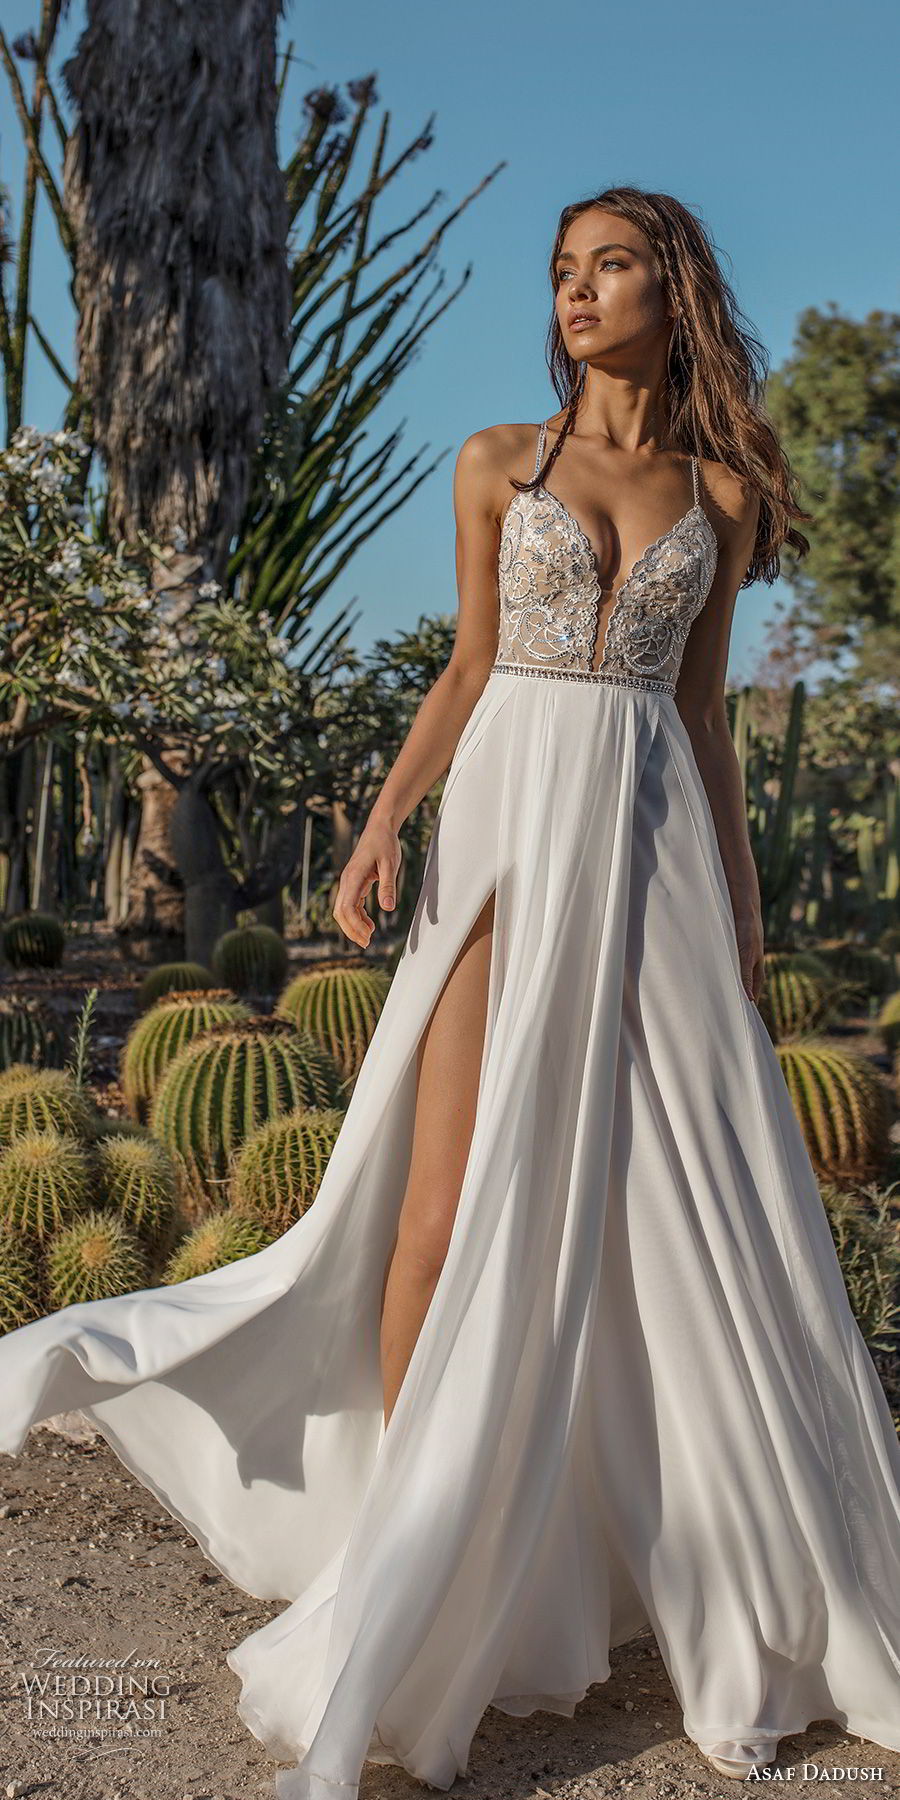 asaf dadush 2018 bridal spaghetti strap deep plunging sweetheart neckline heavily embellised bodice double slit slirt romantic soft a line wedding dress open strap back sweep train (10) mv